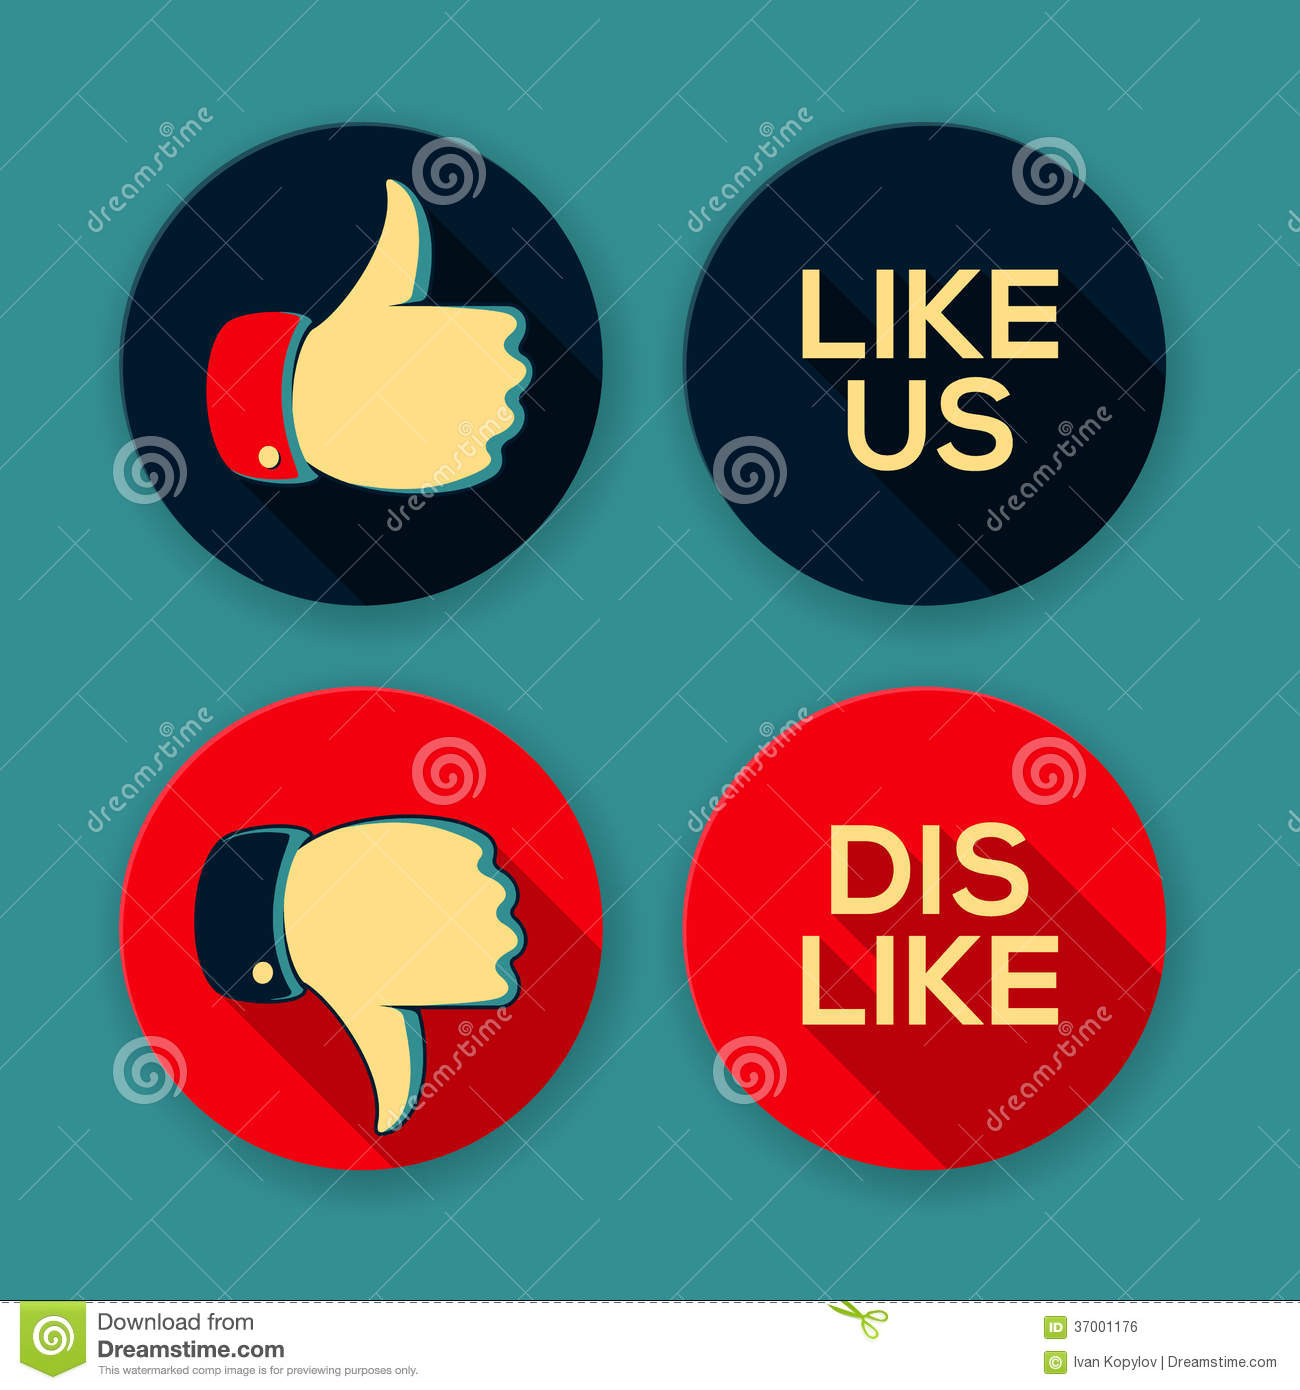 Like Us And Dislike Symbols Stock Vector Illustration Of Gesture